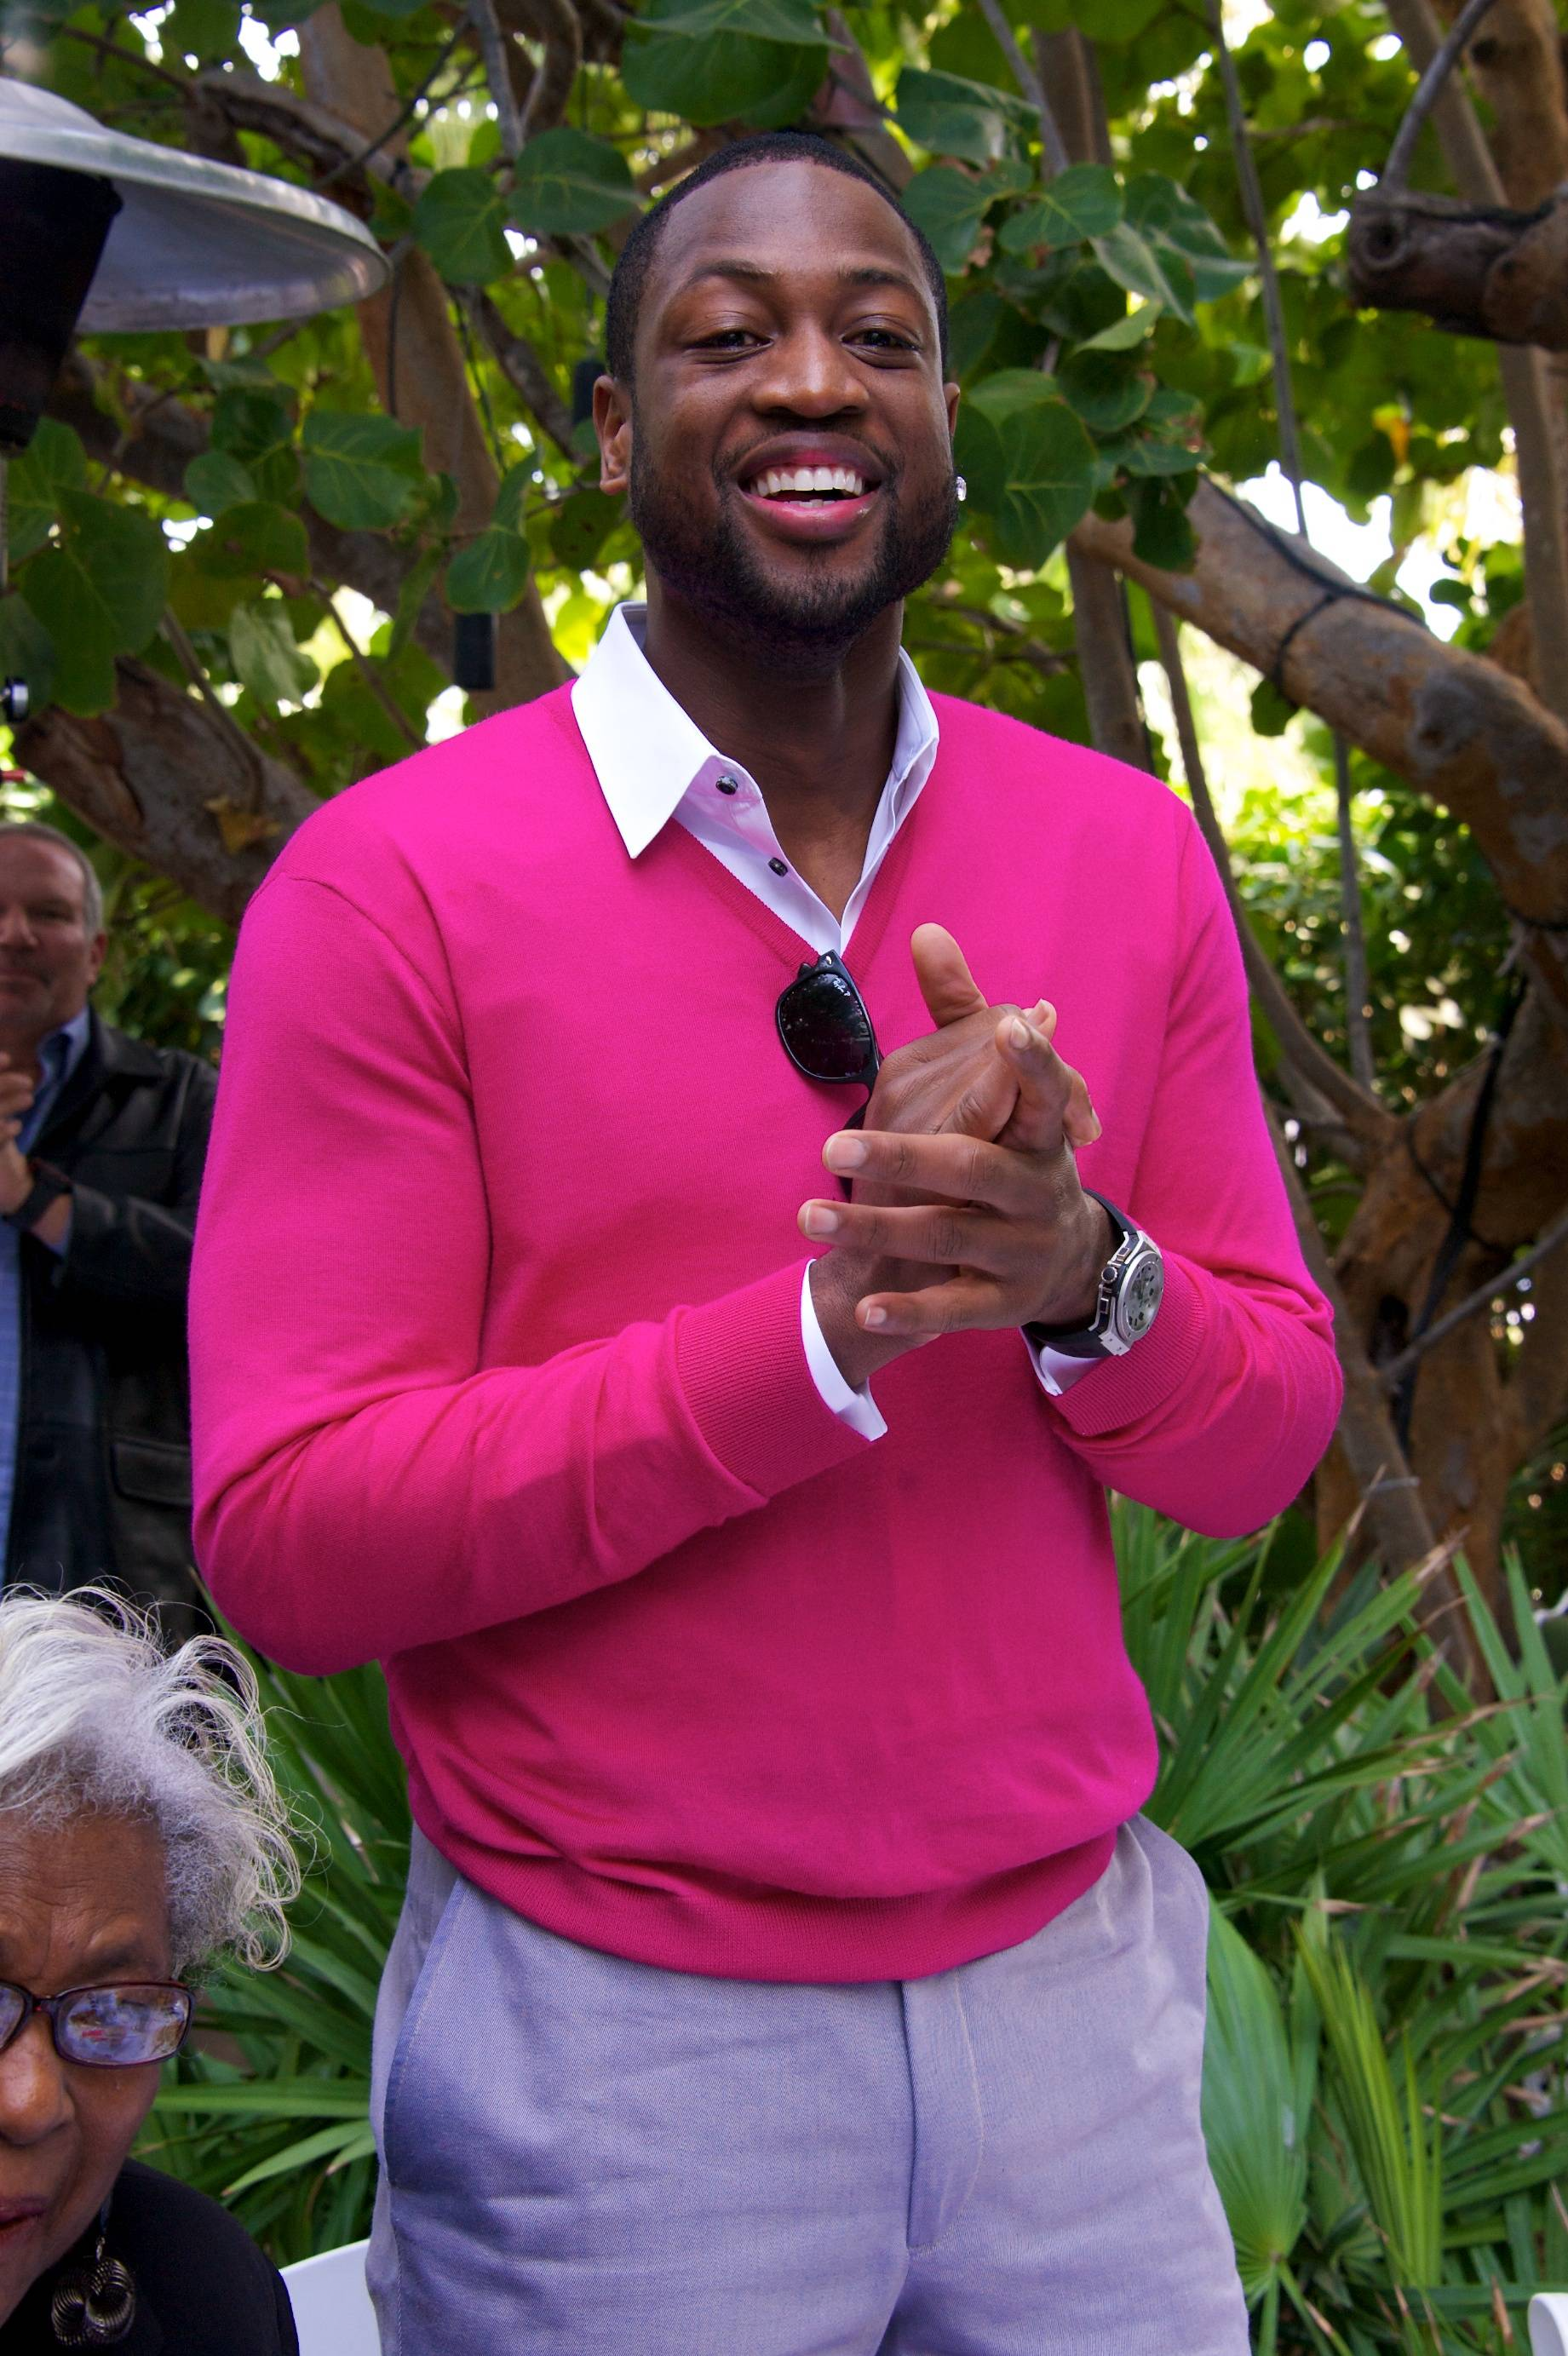 Dwyane Wade's BIG Surprise at W SoBe